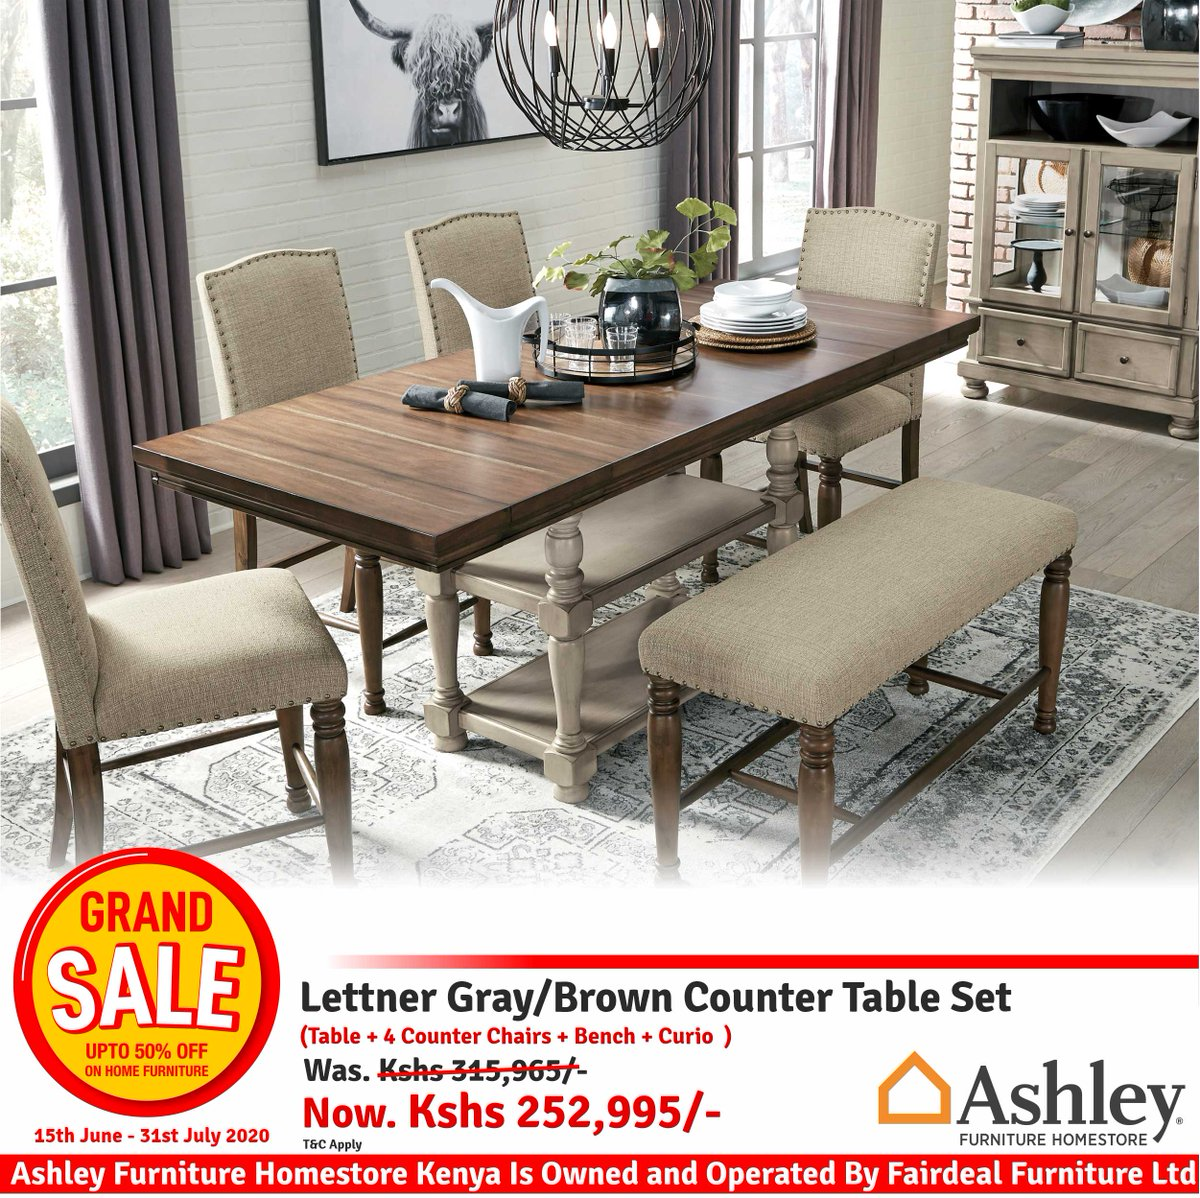 Break from tradition with a fresh approach: this counter height dining room set is sure to take you on. Visit @Ashleyfurn_KE on first floor🍽🍽   #GrandSale #HomeFurnitureGrandSale #AFHKGrandSale #GrandFurnitureSale https://t.co/SSwuu2rv3c